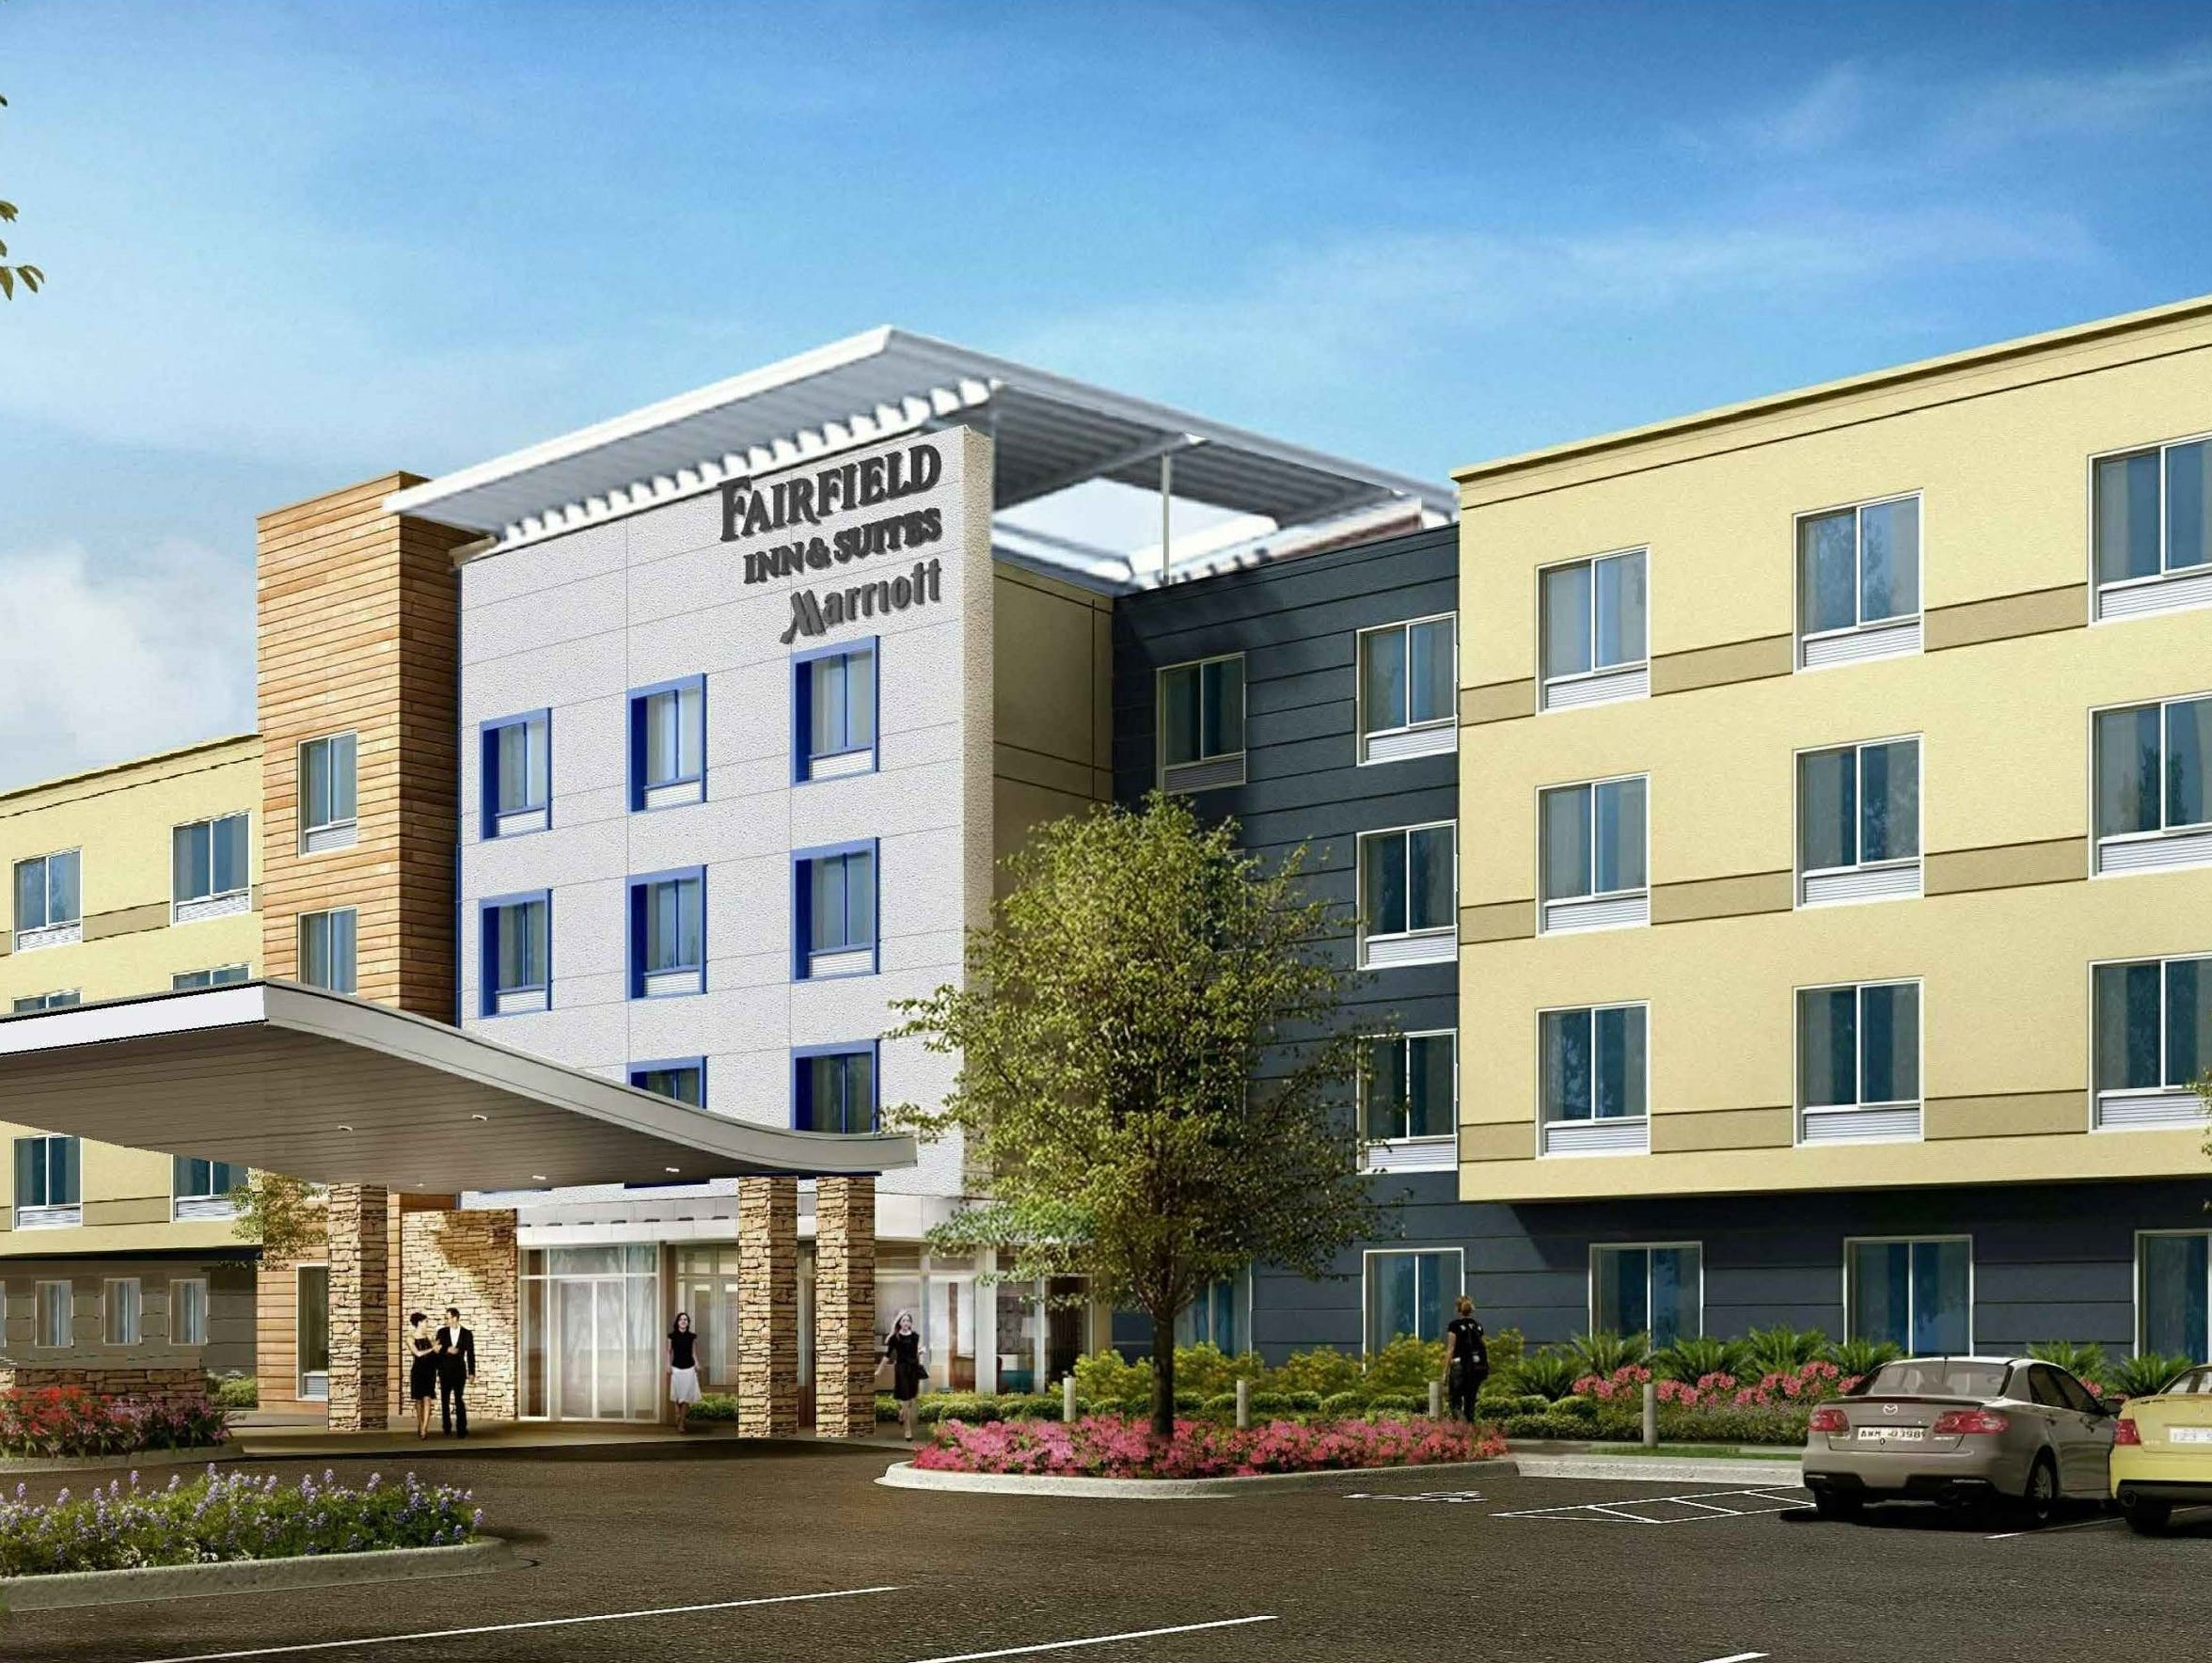 A rendering shows what the Fairfield Inn & Suites in